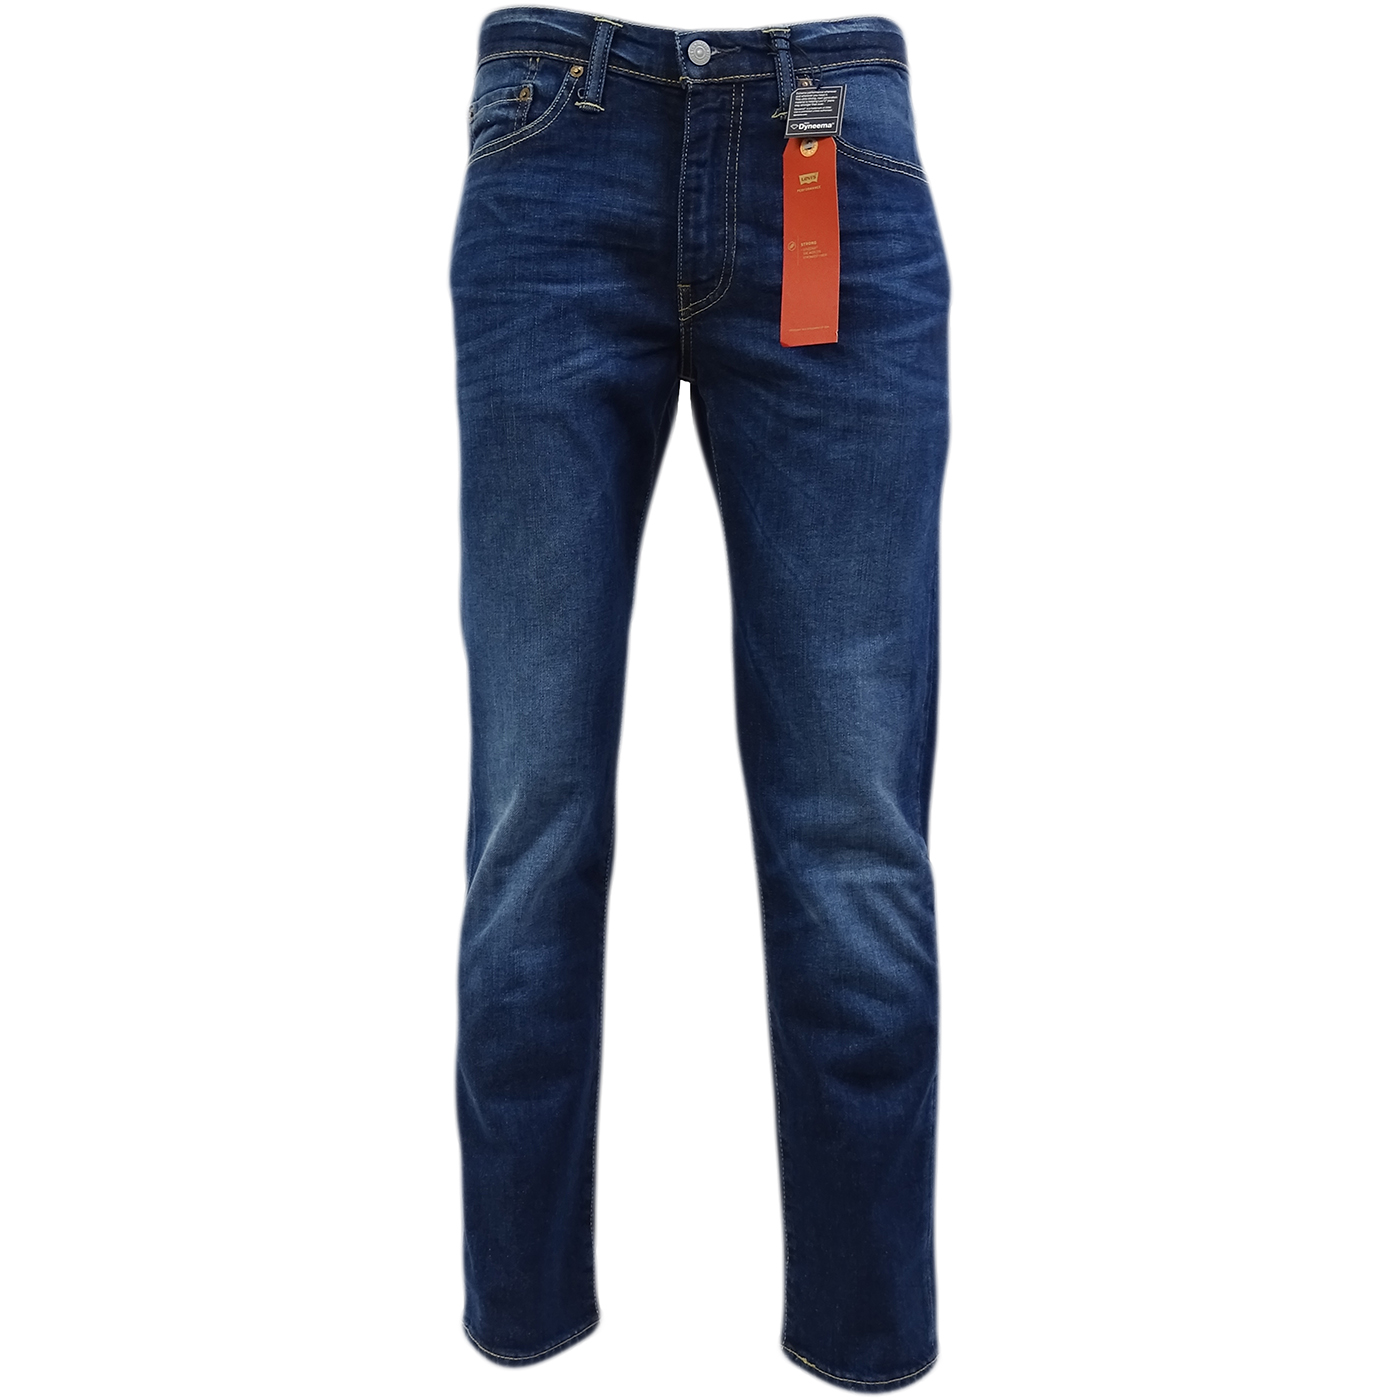 2b0e3e9361ce5 Mens Levi s 511 Slim Fit Jean - Blue